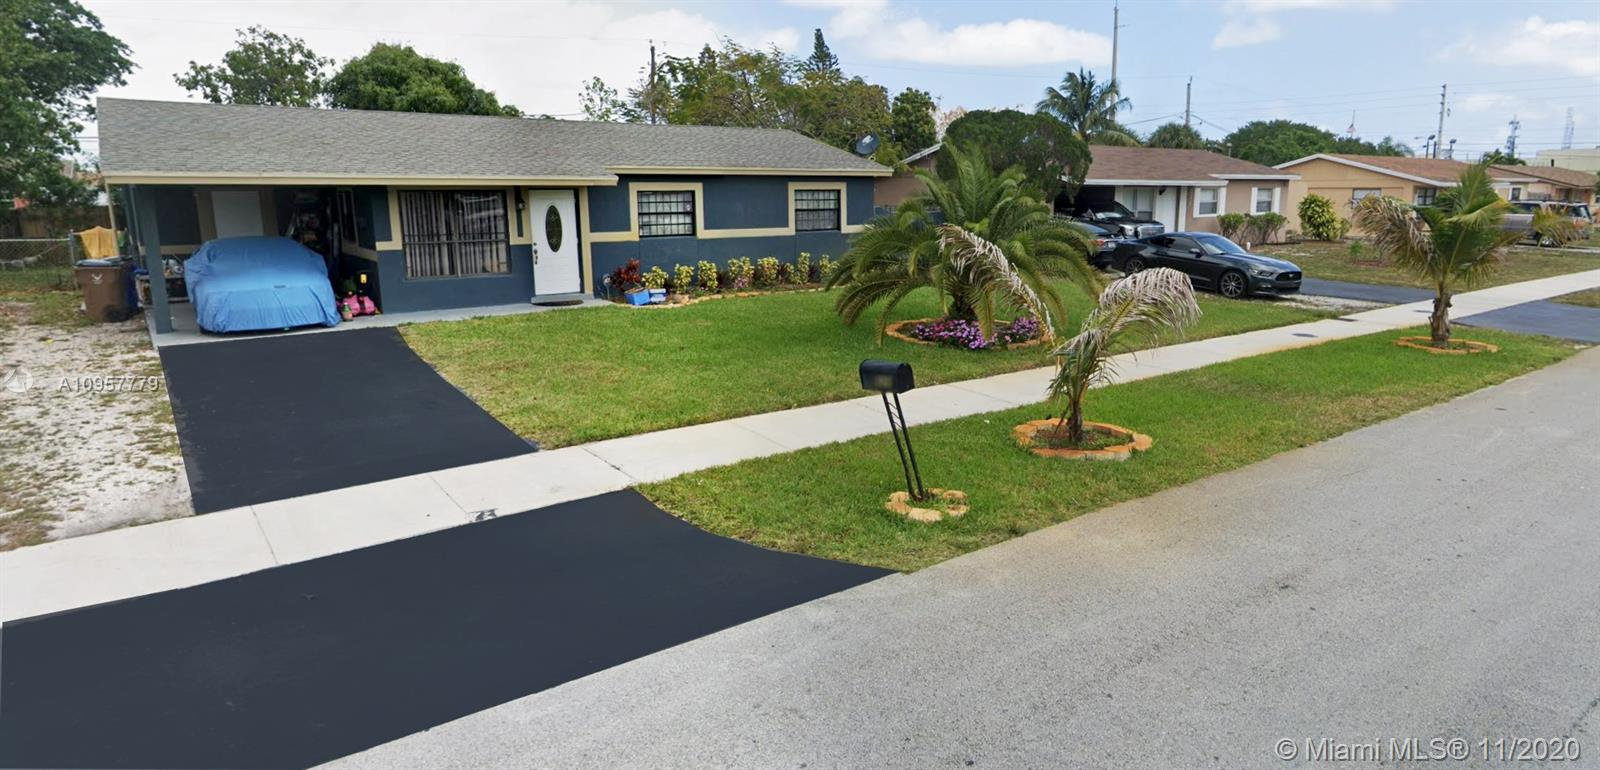 MARVELOUS SINGLE FAMILY HOME IN THE HEART OF DEERFIELD BEACH CLOSE TO MAJOR HIGHWAYS, SHOPS, BEACH, CITY PARKS AND RESTAURANTS. HOME COMPLETETLY UPDATED WITH STAINLESS STEAL APPLIANCES, GRANITE COUNTER TOPS, UPDATED BATHROOMS , SPACIOUS BACKYARD GREAT FOR ENTERTAINING AND FRUIT TREES. ALL AGES WELCOME.